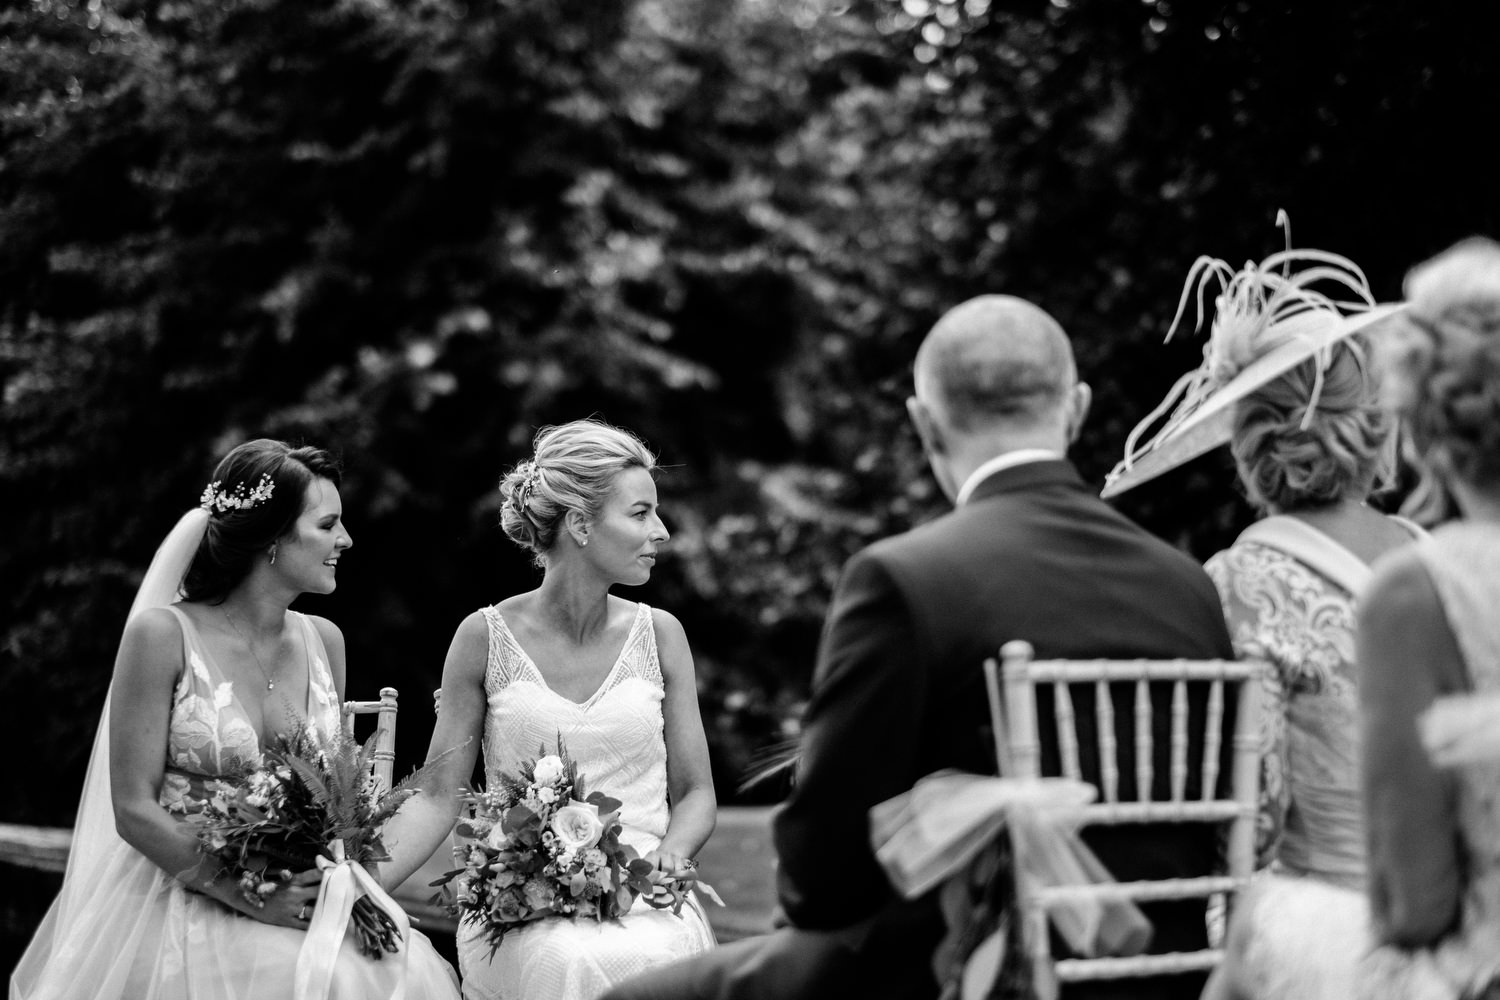 dmp0422_candid_brides_gay_ballintubbert_photography_ireland_ceremony_laois_documentary_outdoor_relaxed_twobrides_wedding_samesex_house_fun